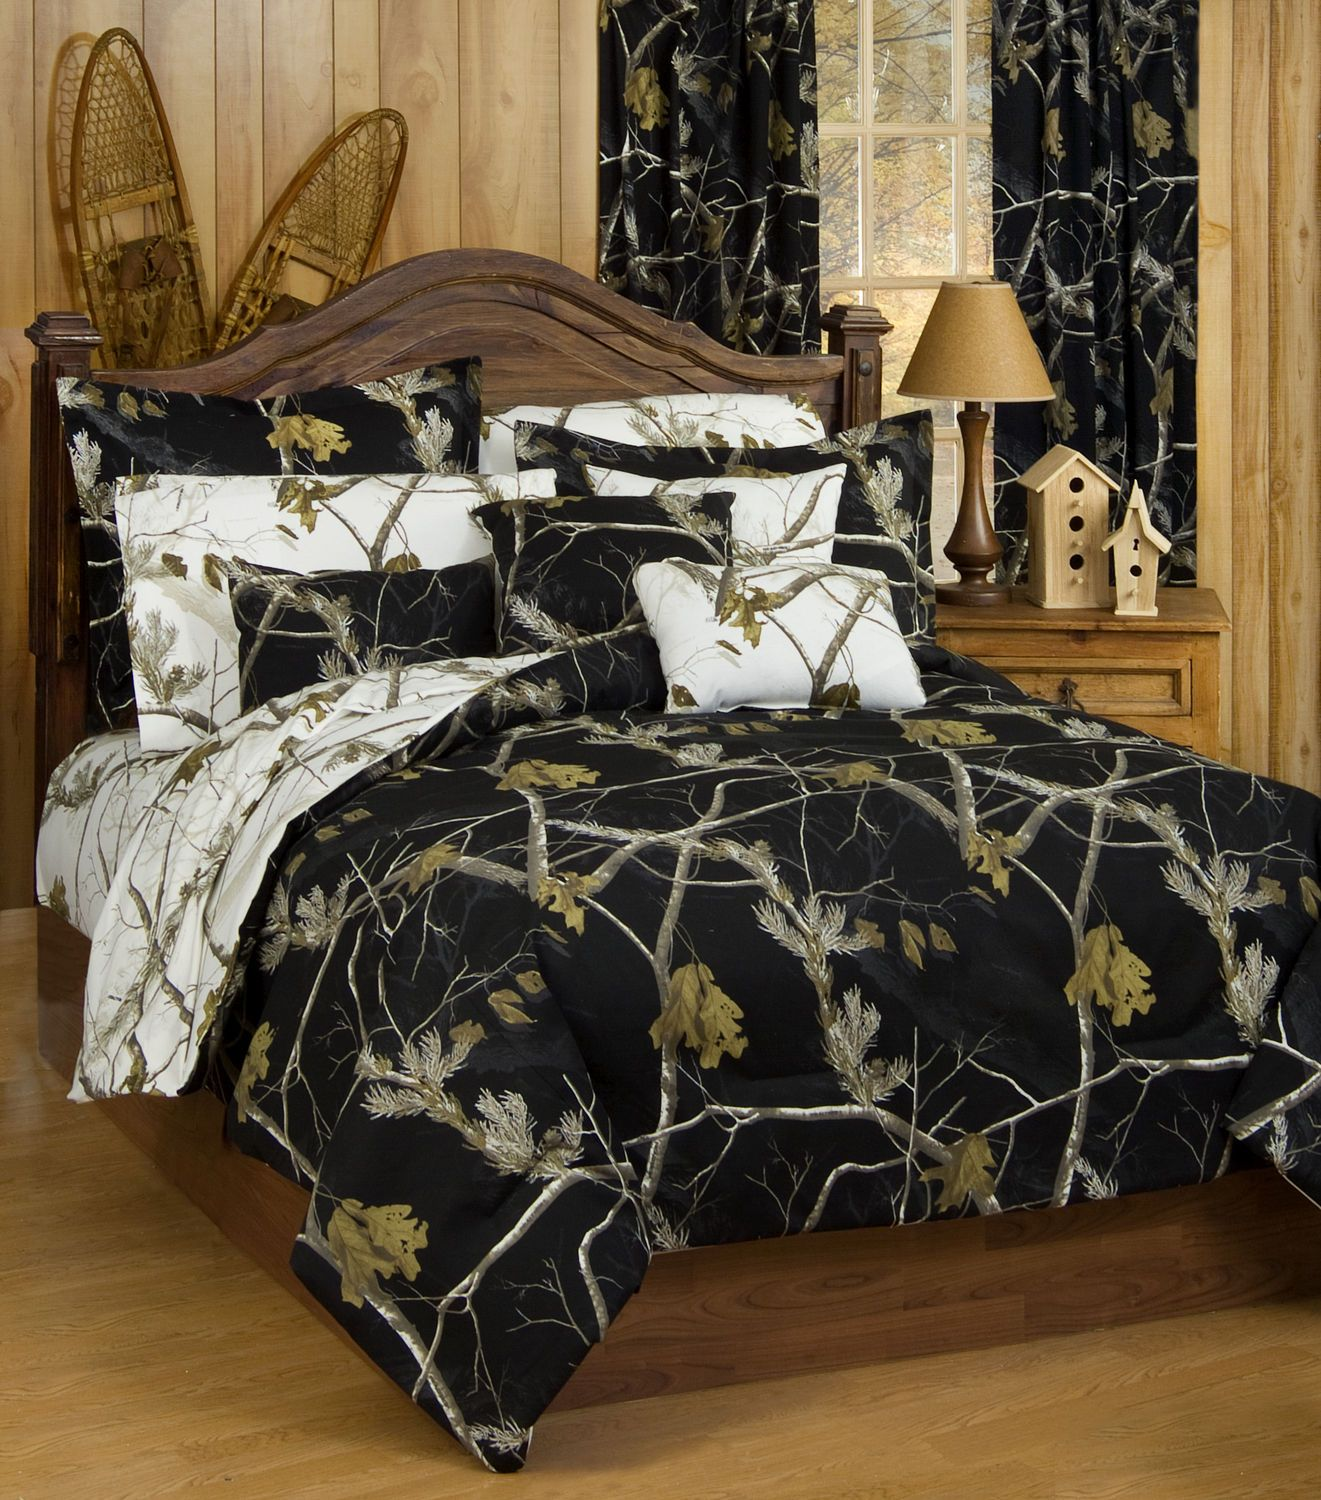 Modern meets rustic and the result is unique camouflage bedding